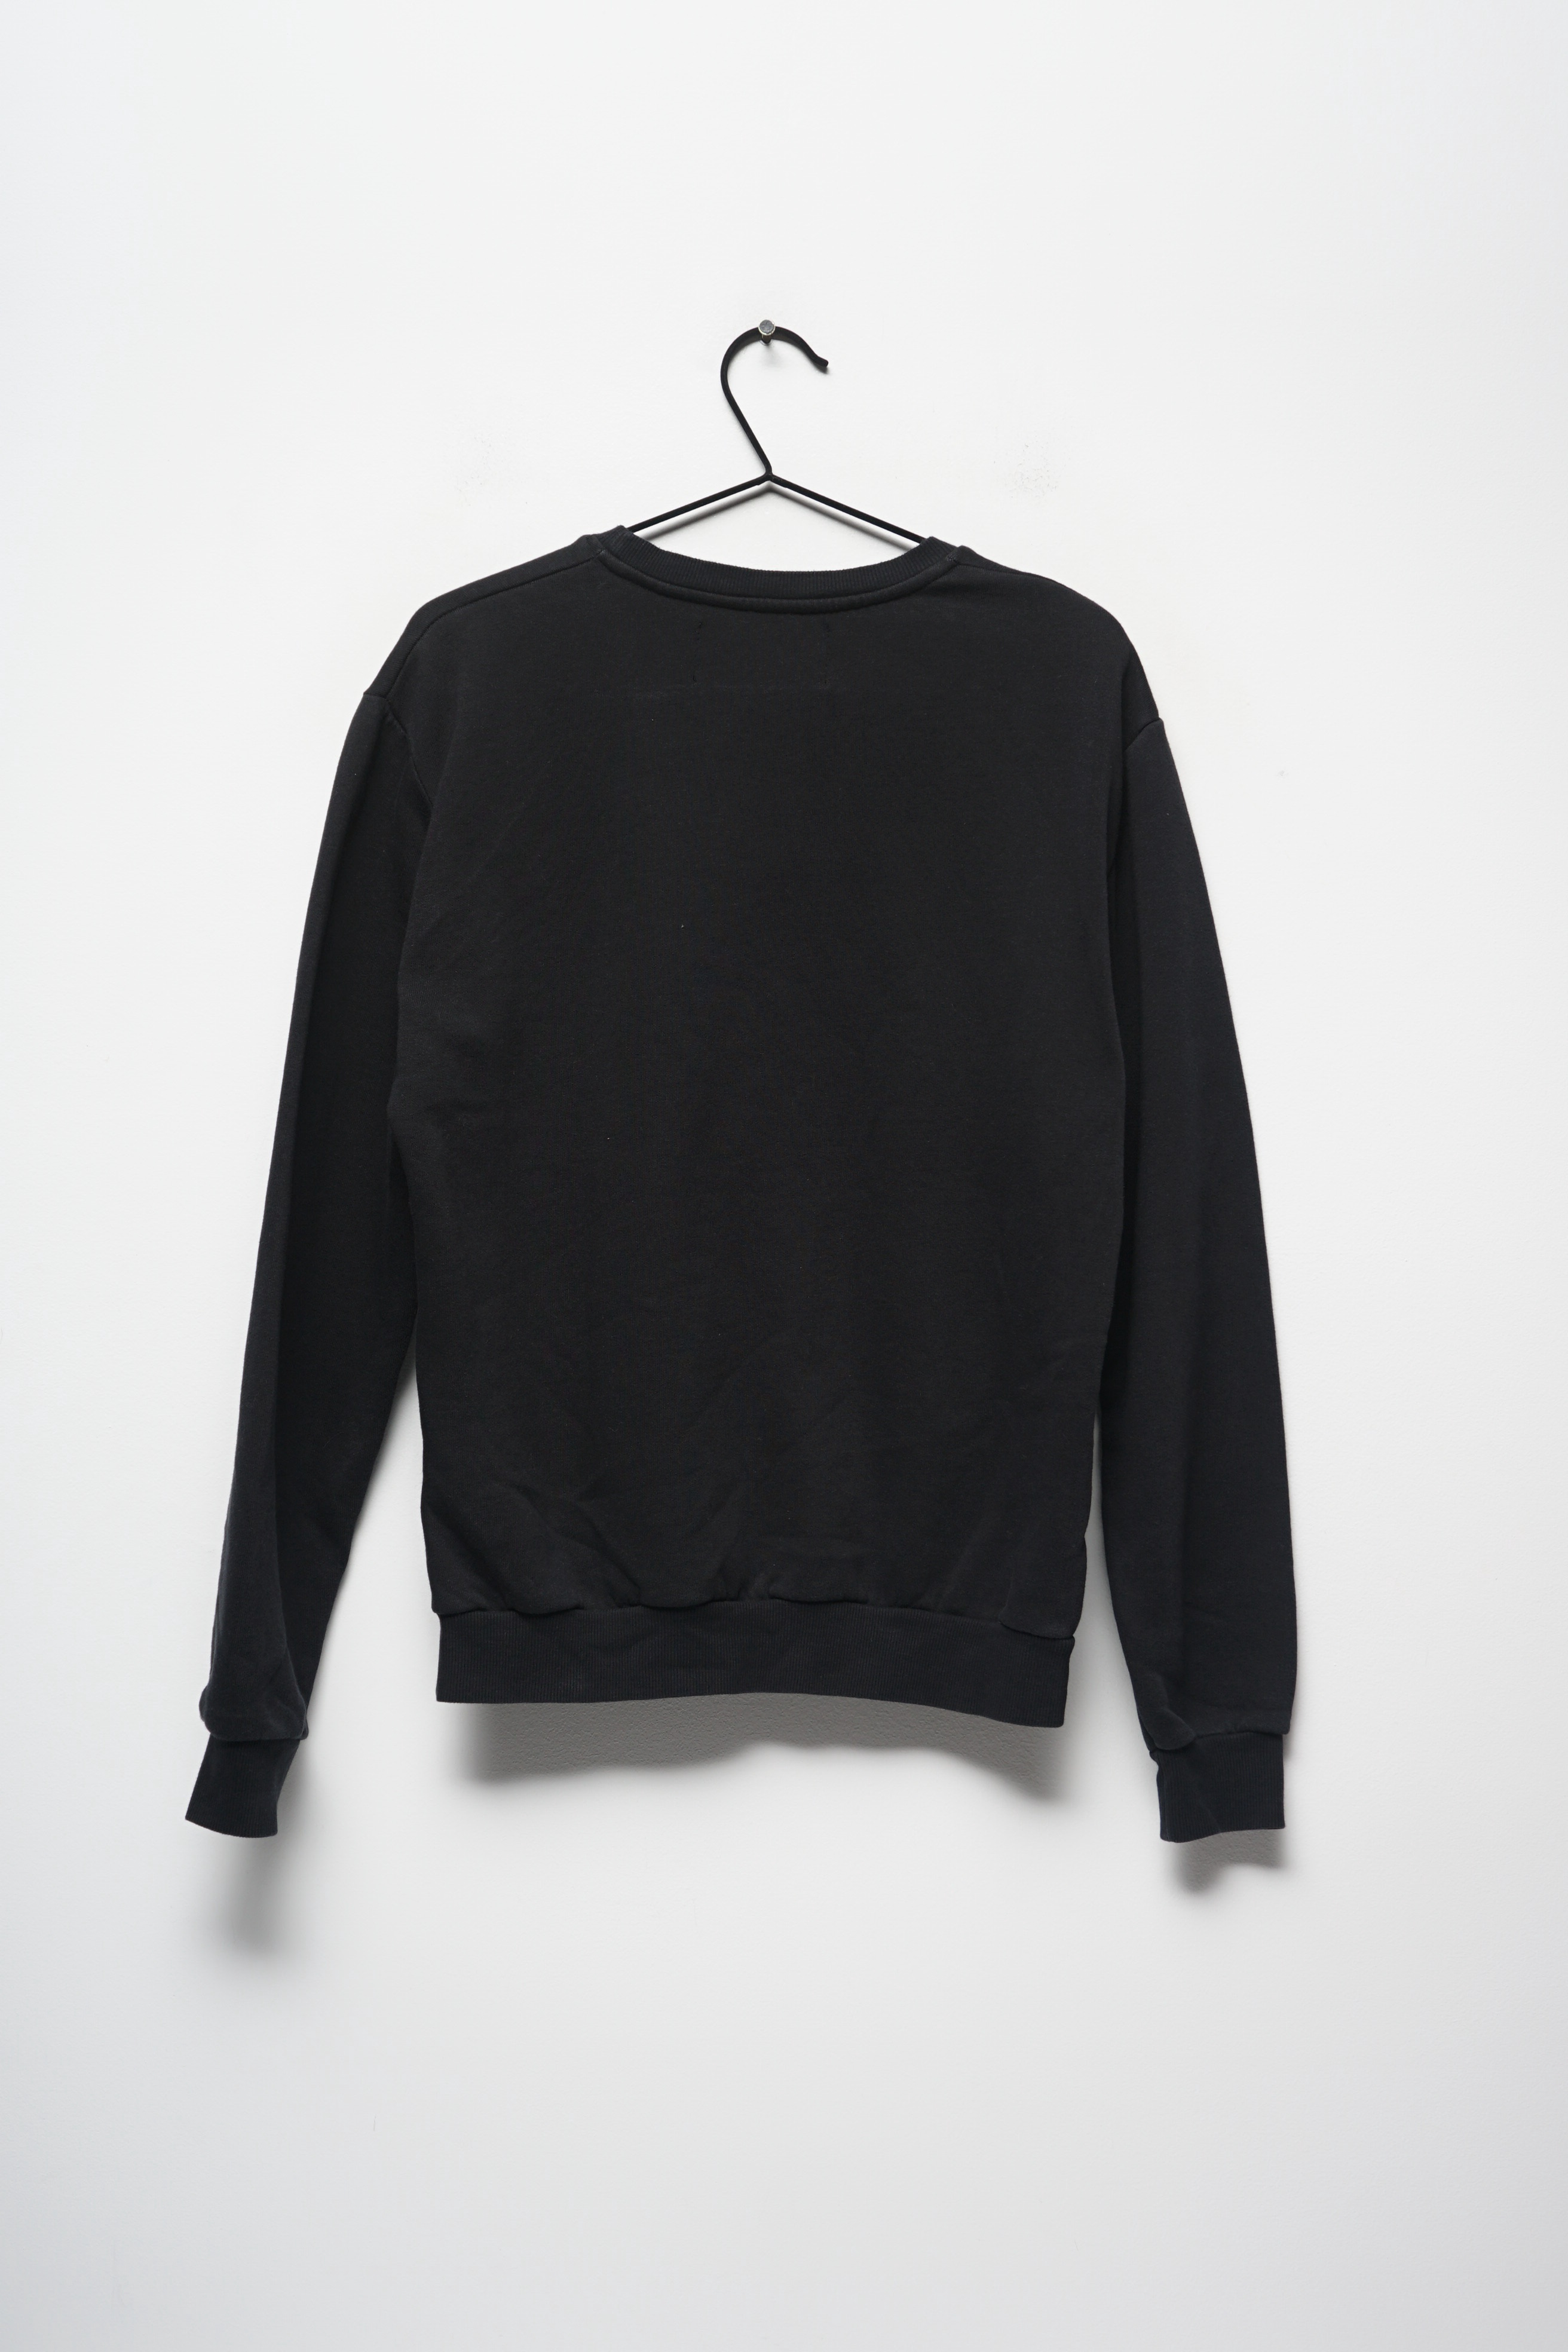 Zara Sweat / Fleece Schwarz Gr.M